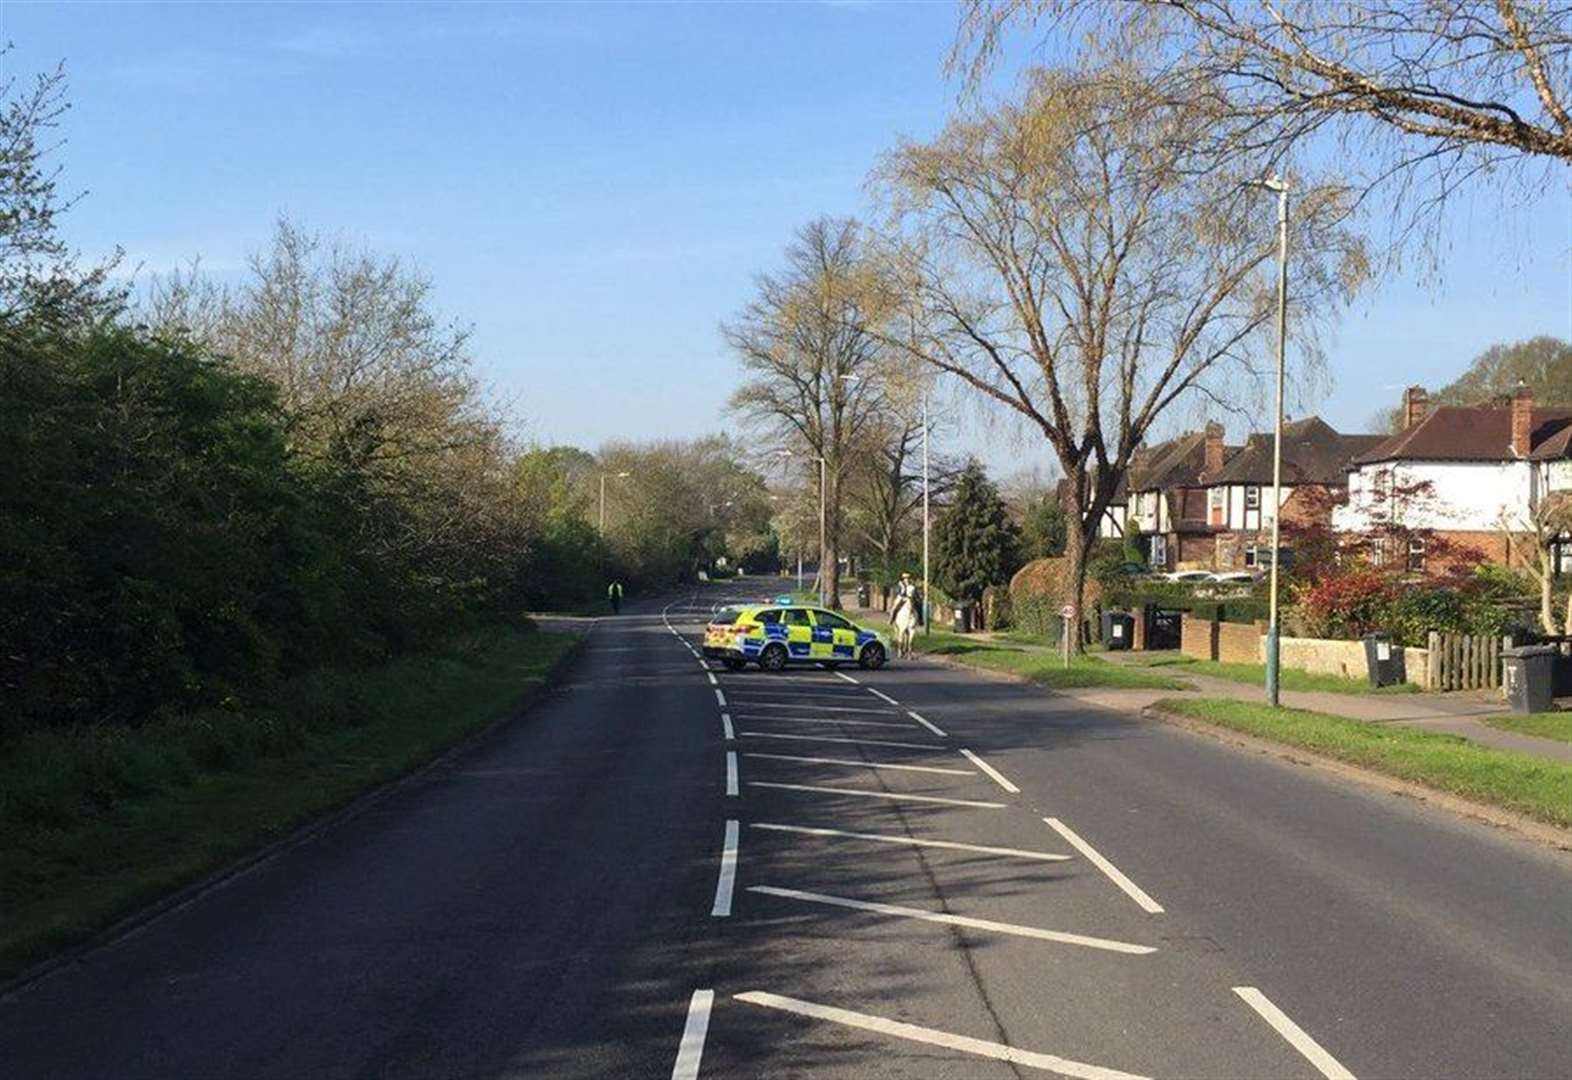 Road closed after serious crash